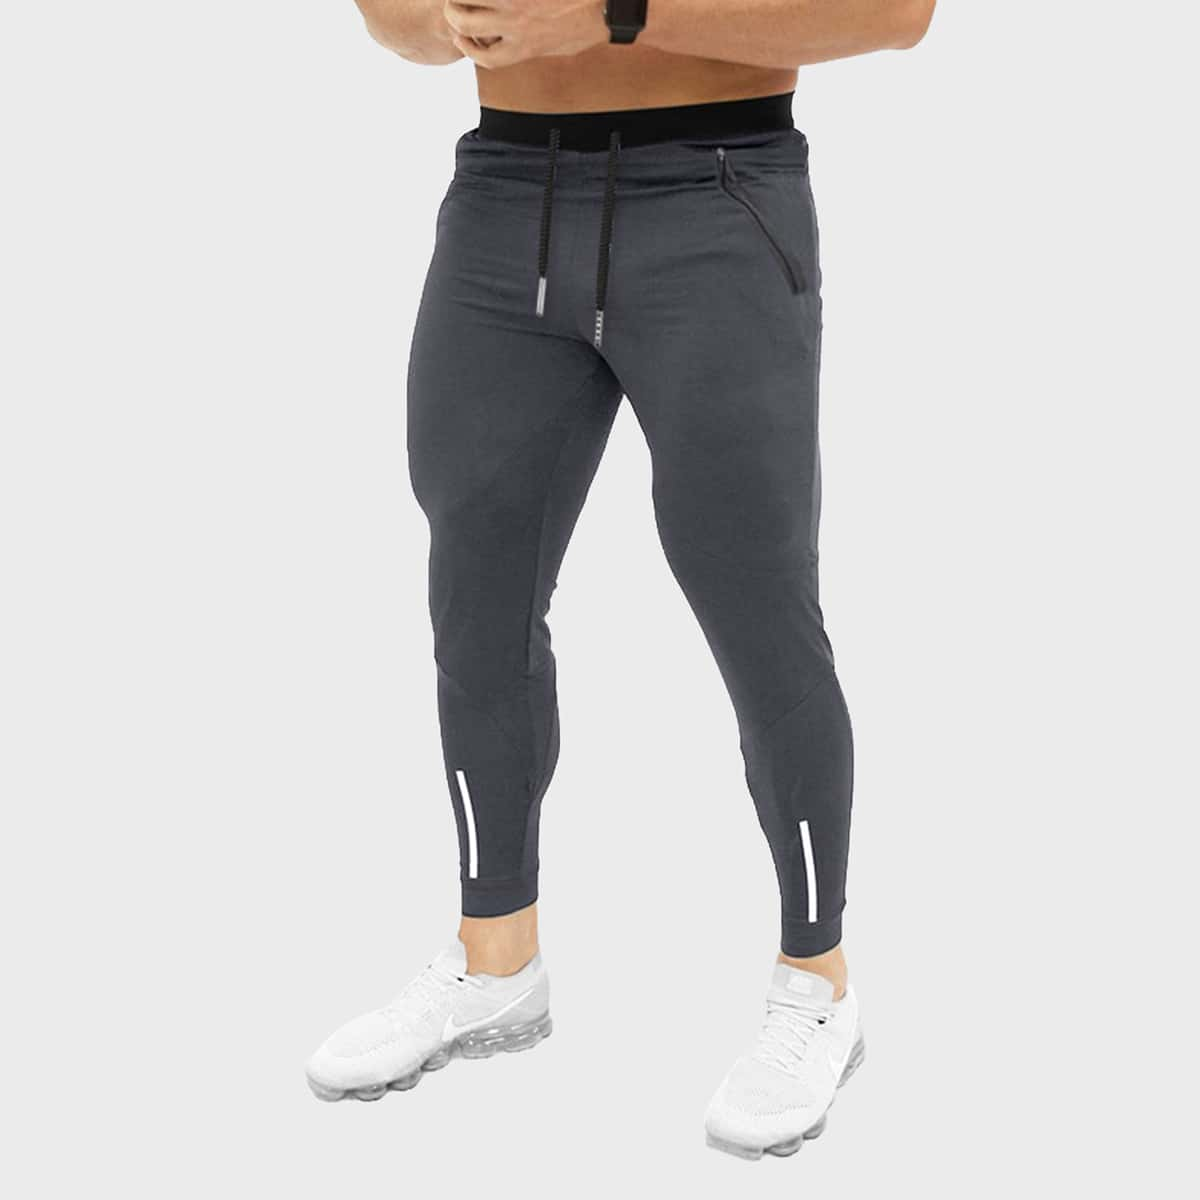 Men Tape Side Drawstring Athletic Pants